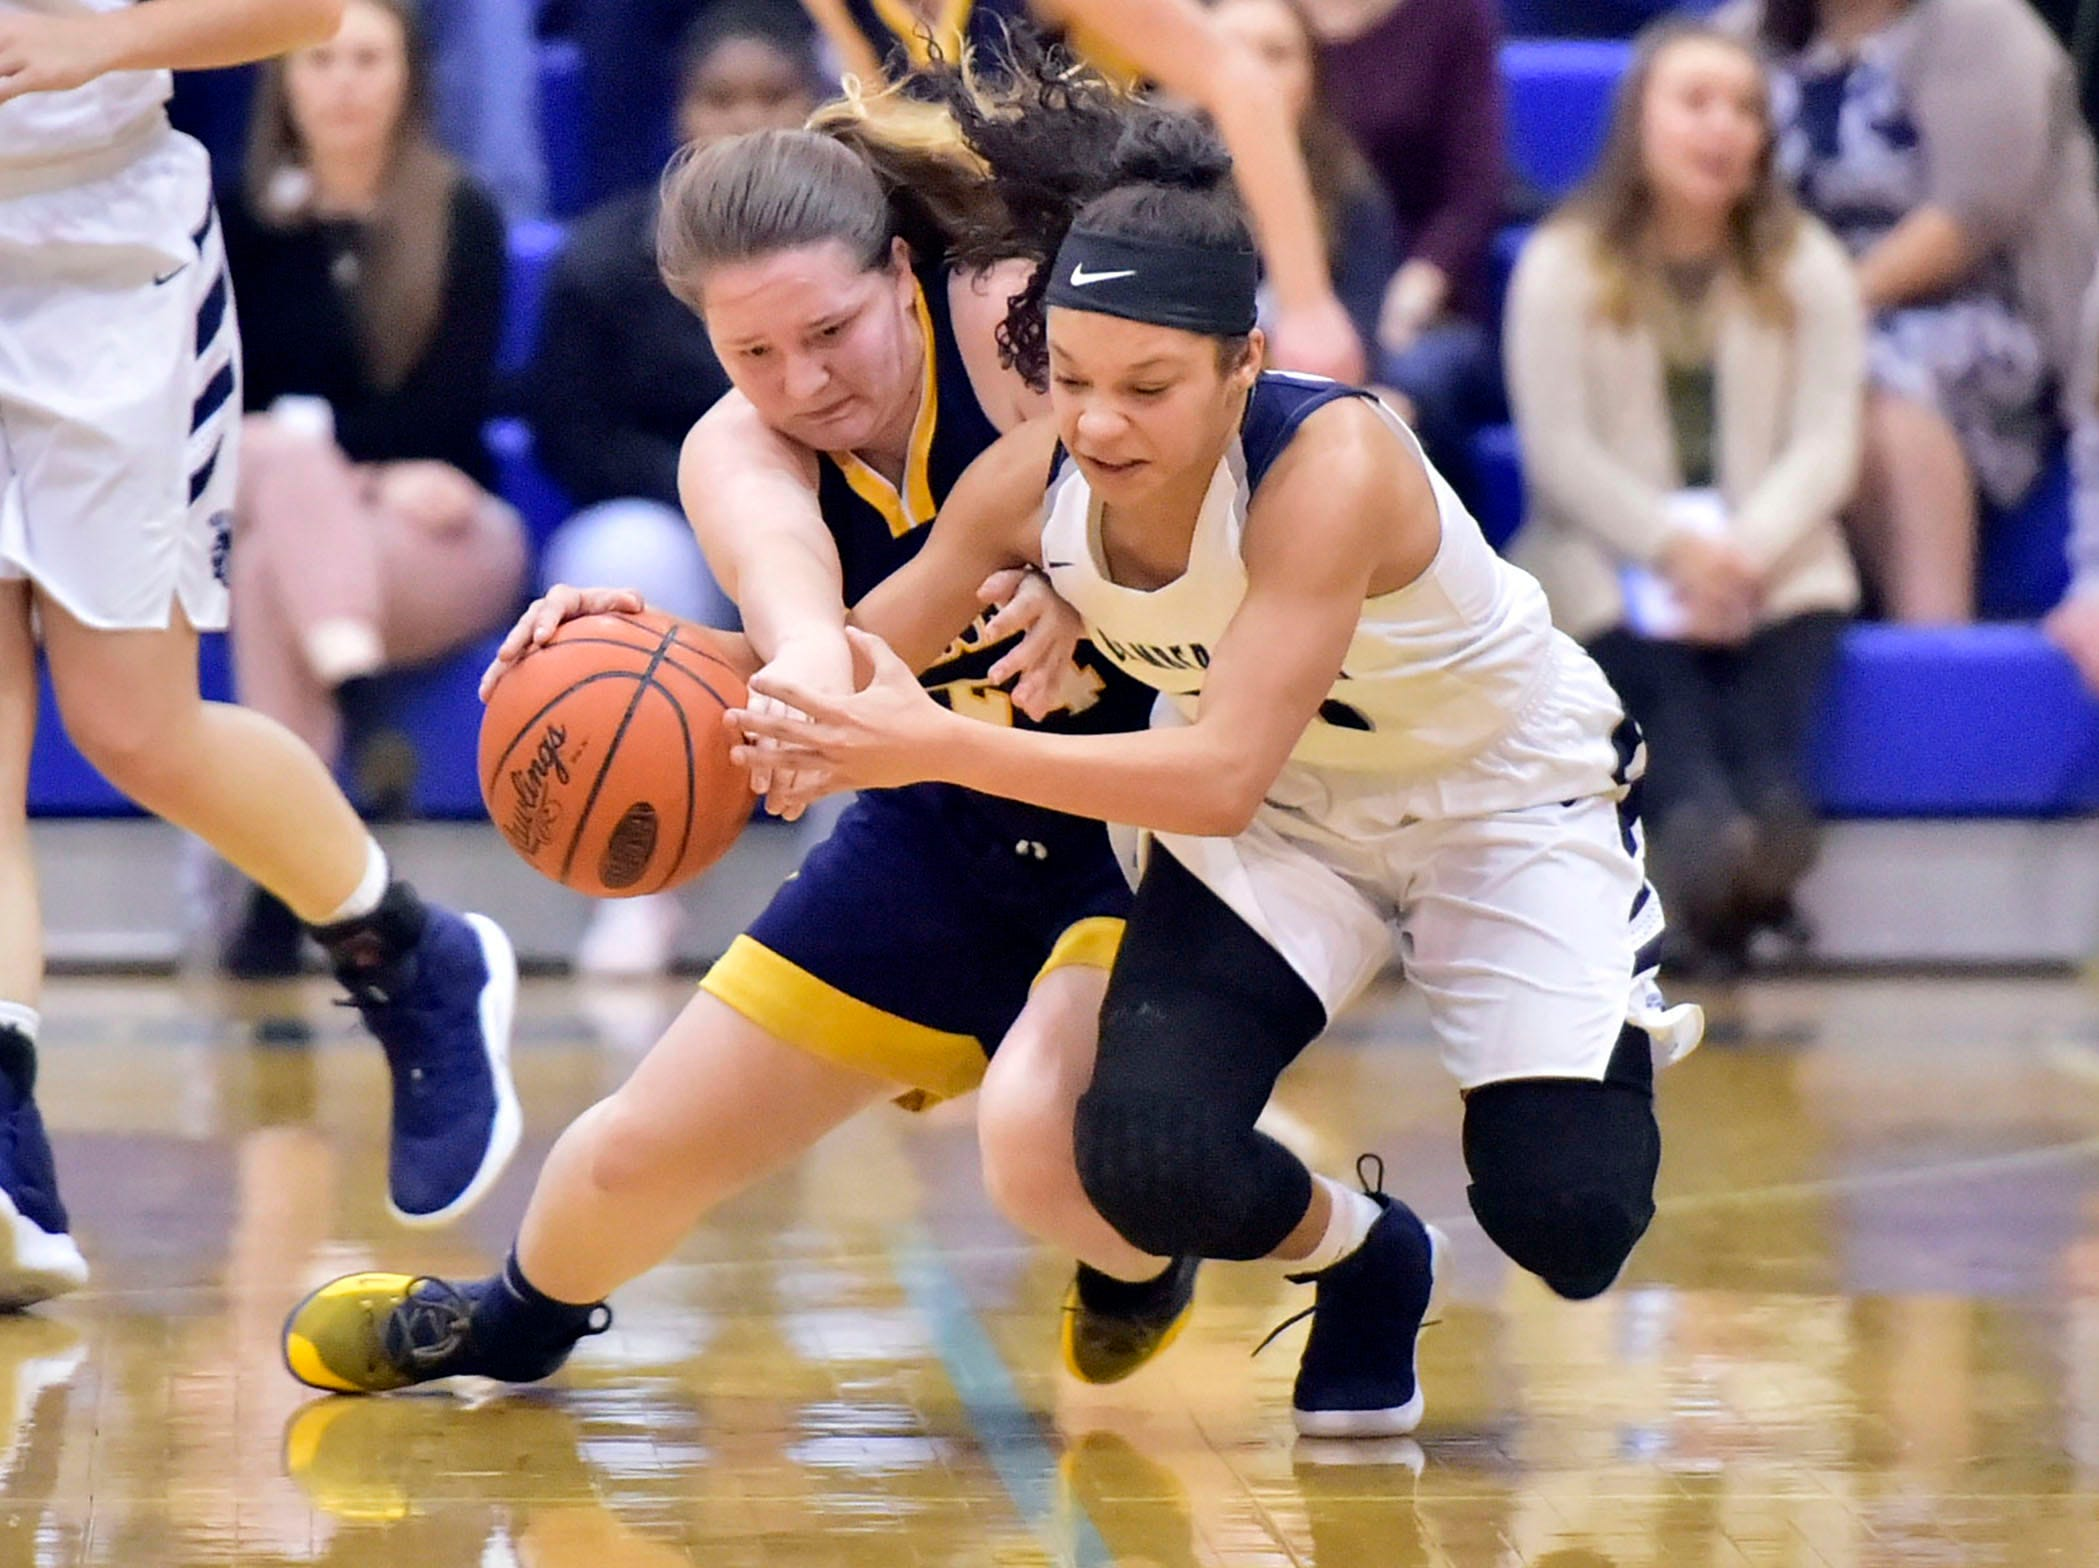 Greencastle's Madison Sweitzer (24) and Chambersburg's Bre'ya Clopper dive for a loose ball.  Greencastle defeated Chambersburg 26-22 during the finals at Franklin County Tip-Off Tournament, Saturday, Dec. 8, 2018.